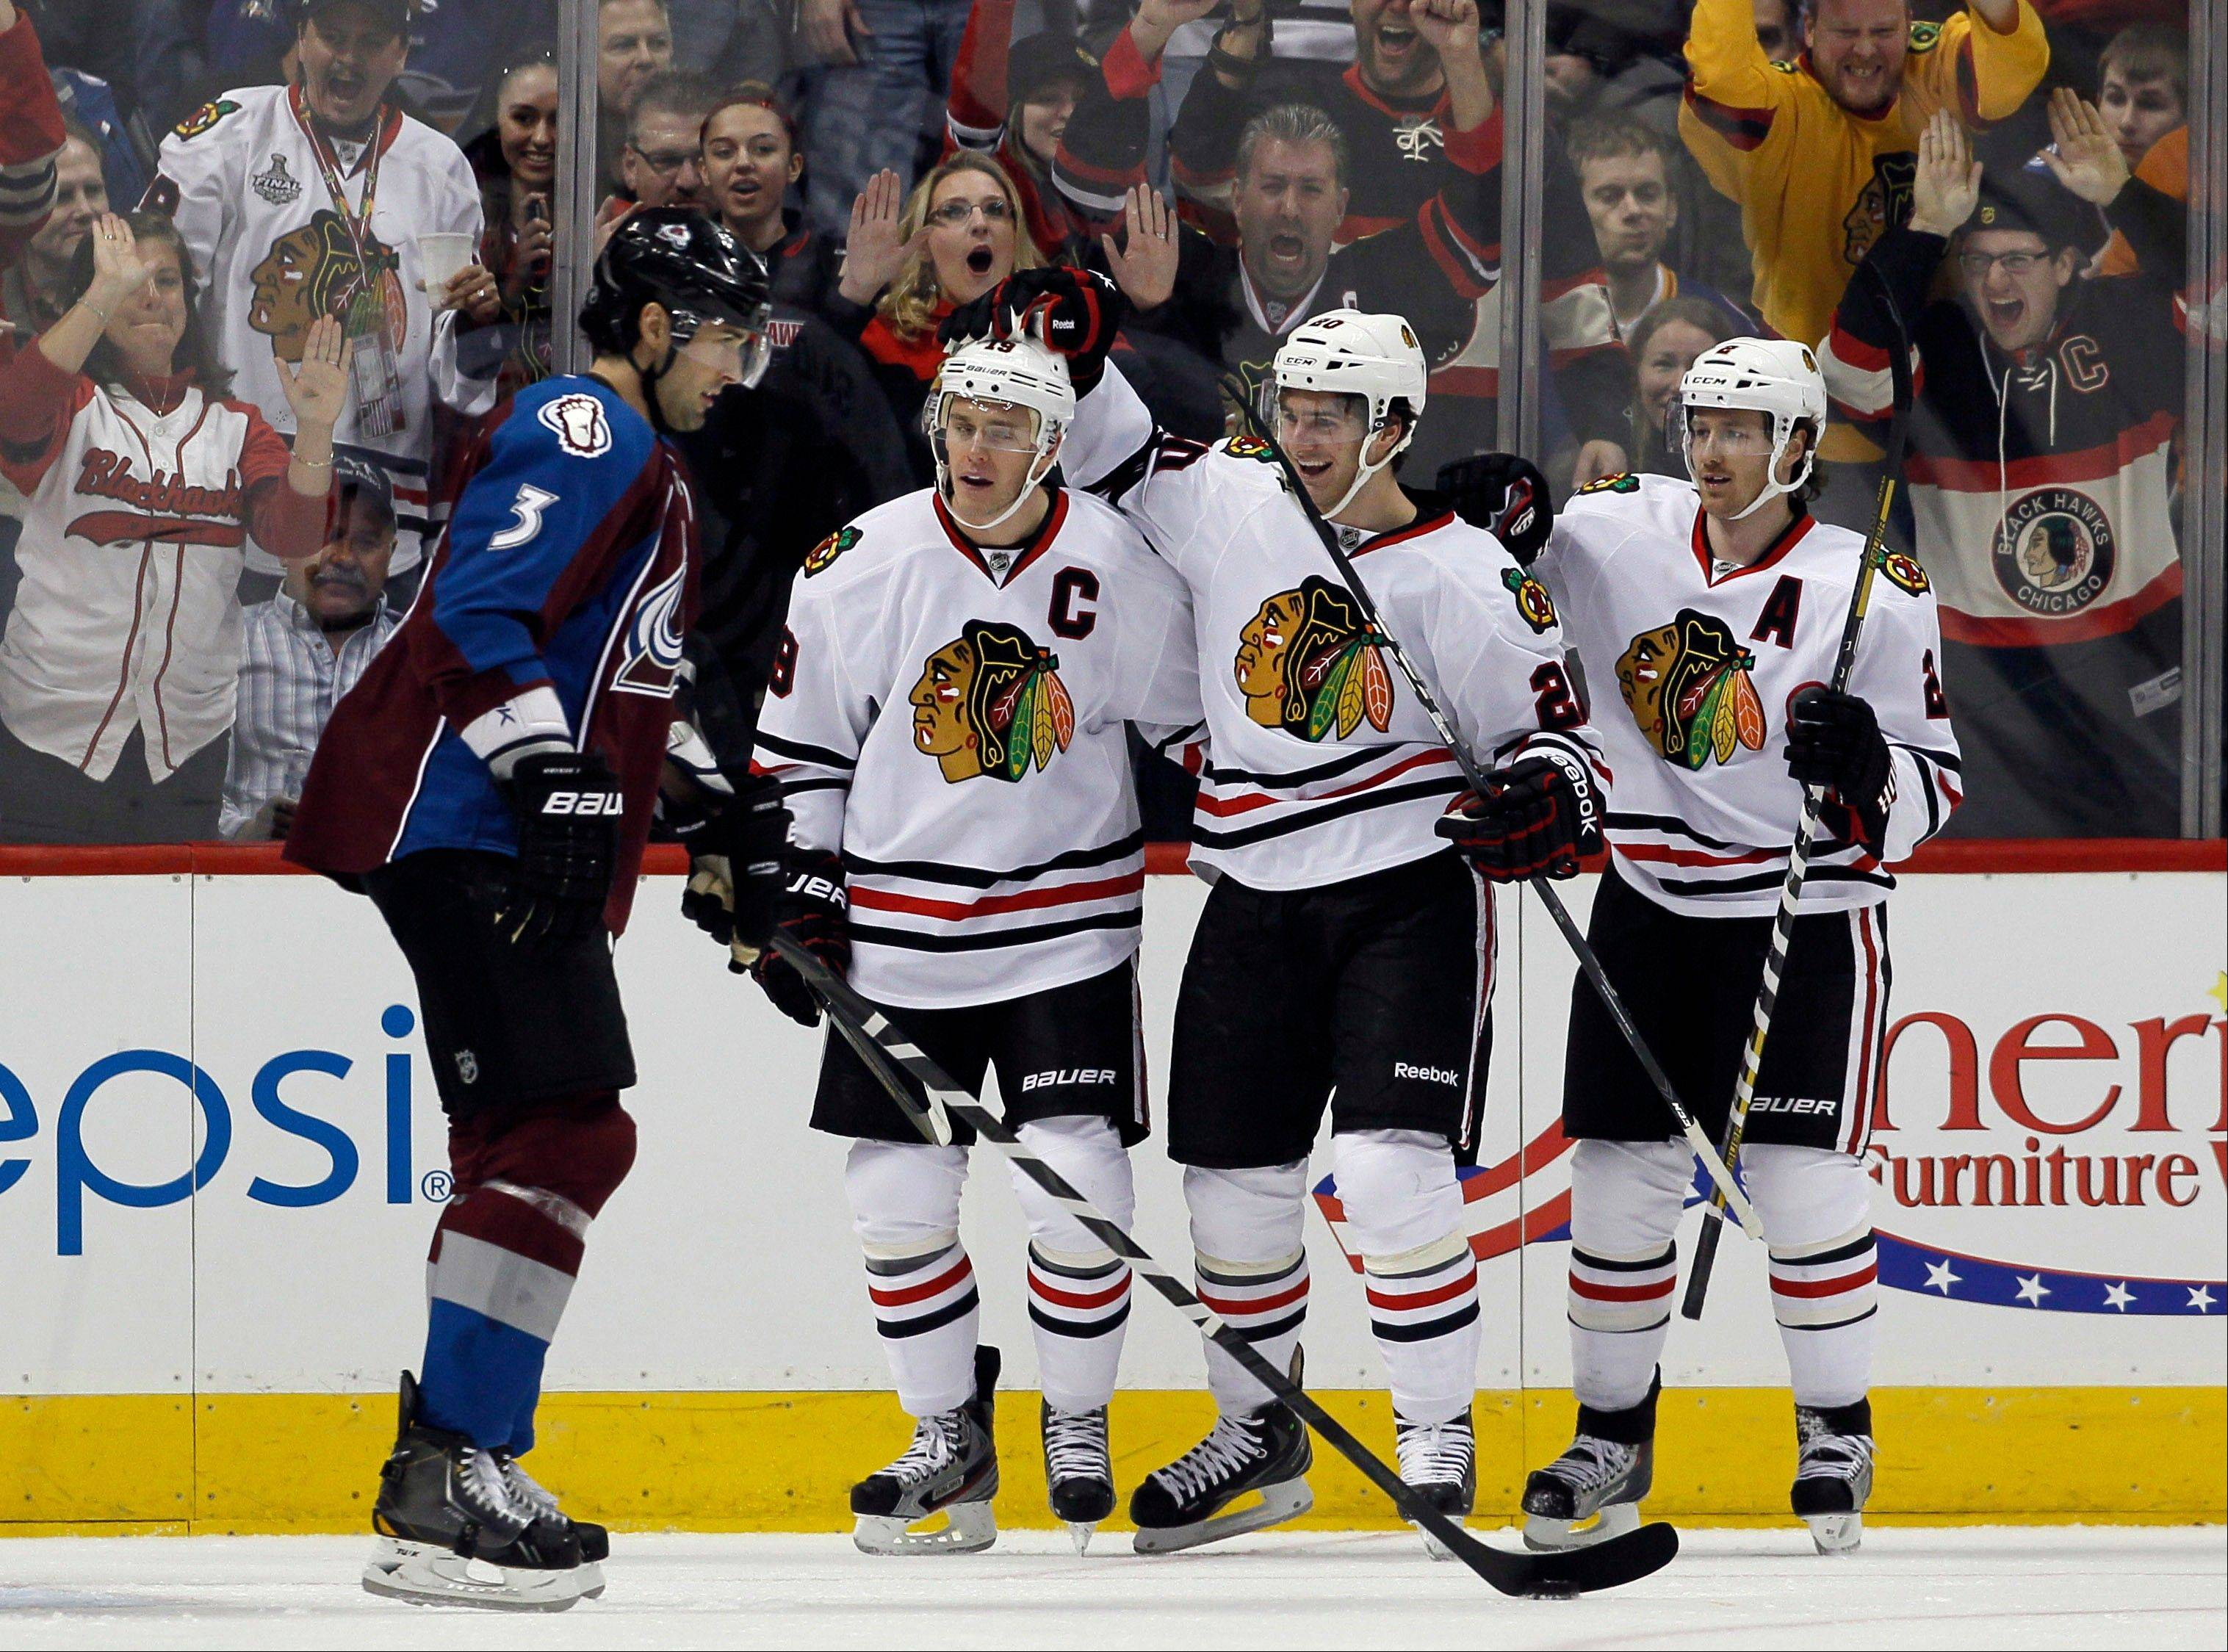 Jonathan Toews, second from left, is congratulated by teammates Brandon Saad and Duncan Keith after giving the Blackhawks a 1-0 lead Friday night at Colorado. It was their last lead as the Avalanche scored 5 straight goals to give the Hawks their first defeat in regulation in the 25th game of the season.